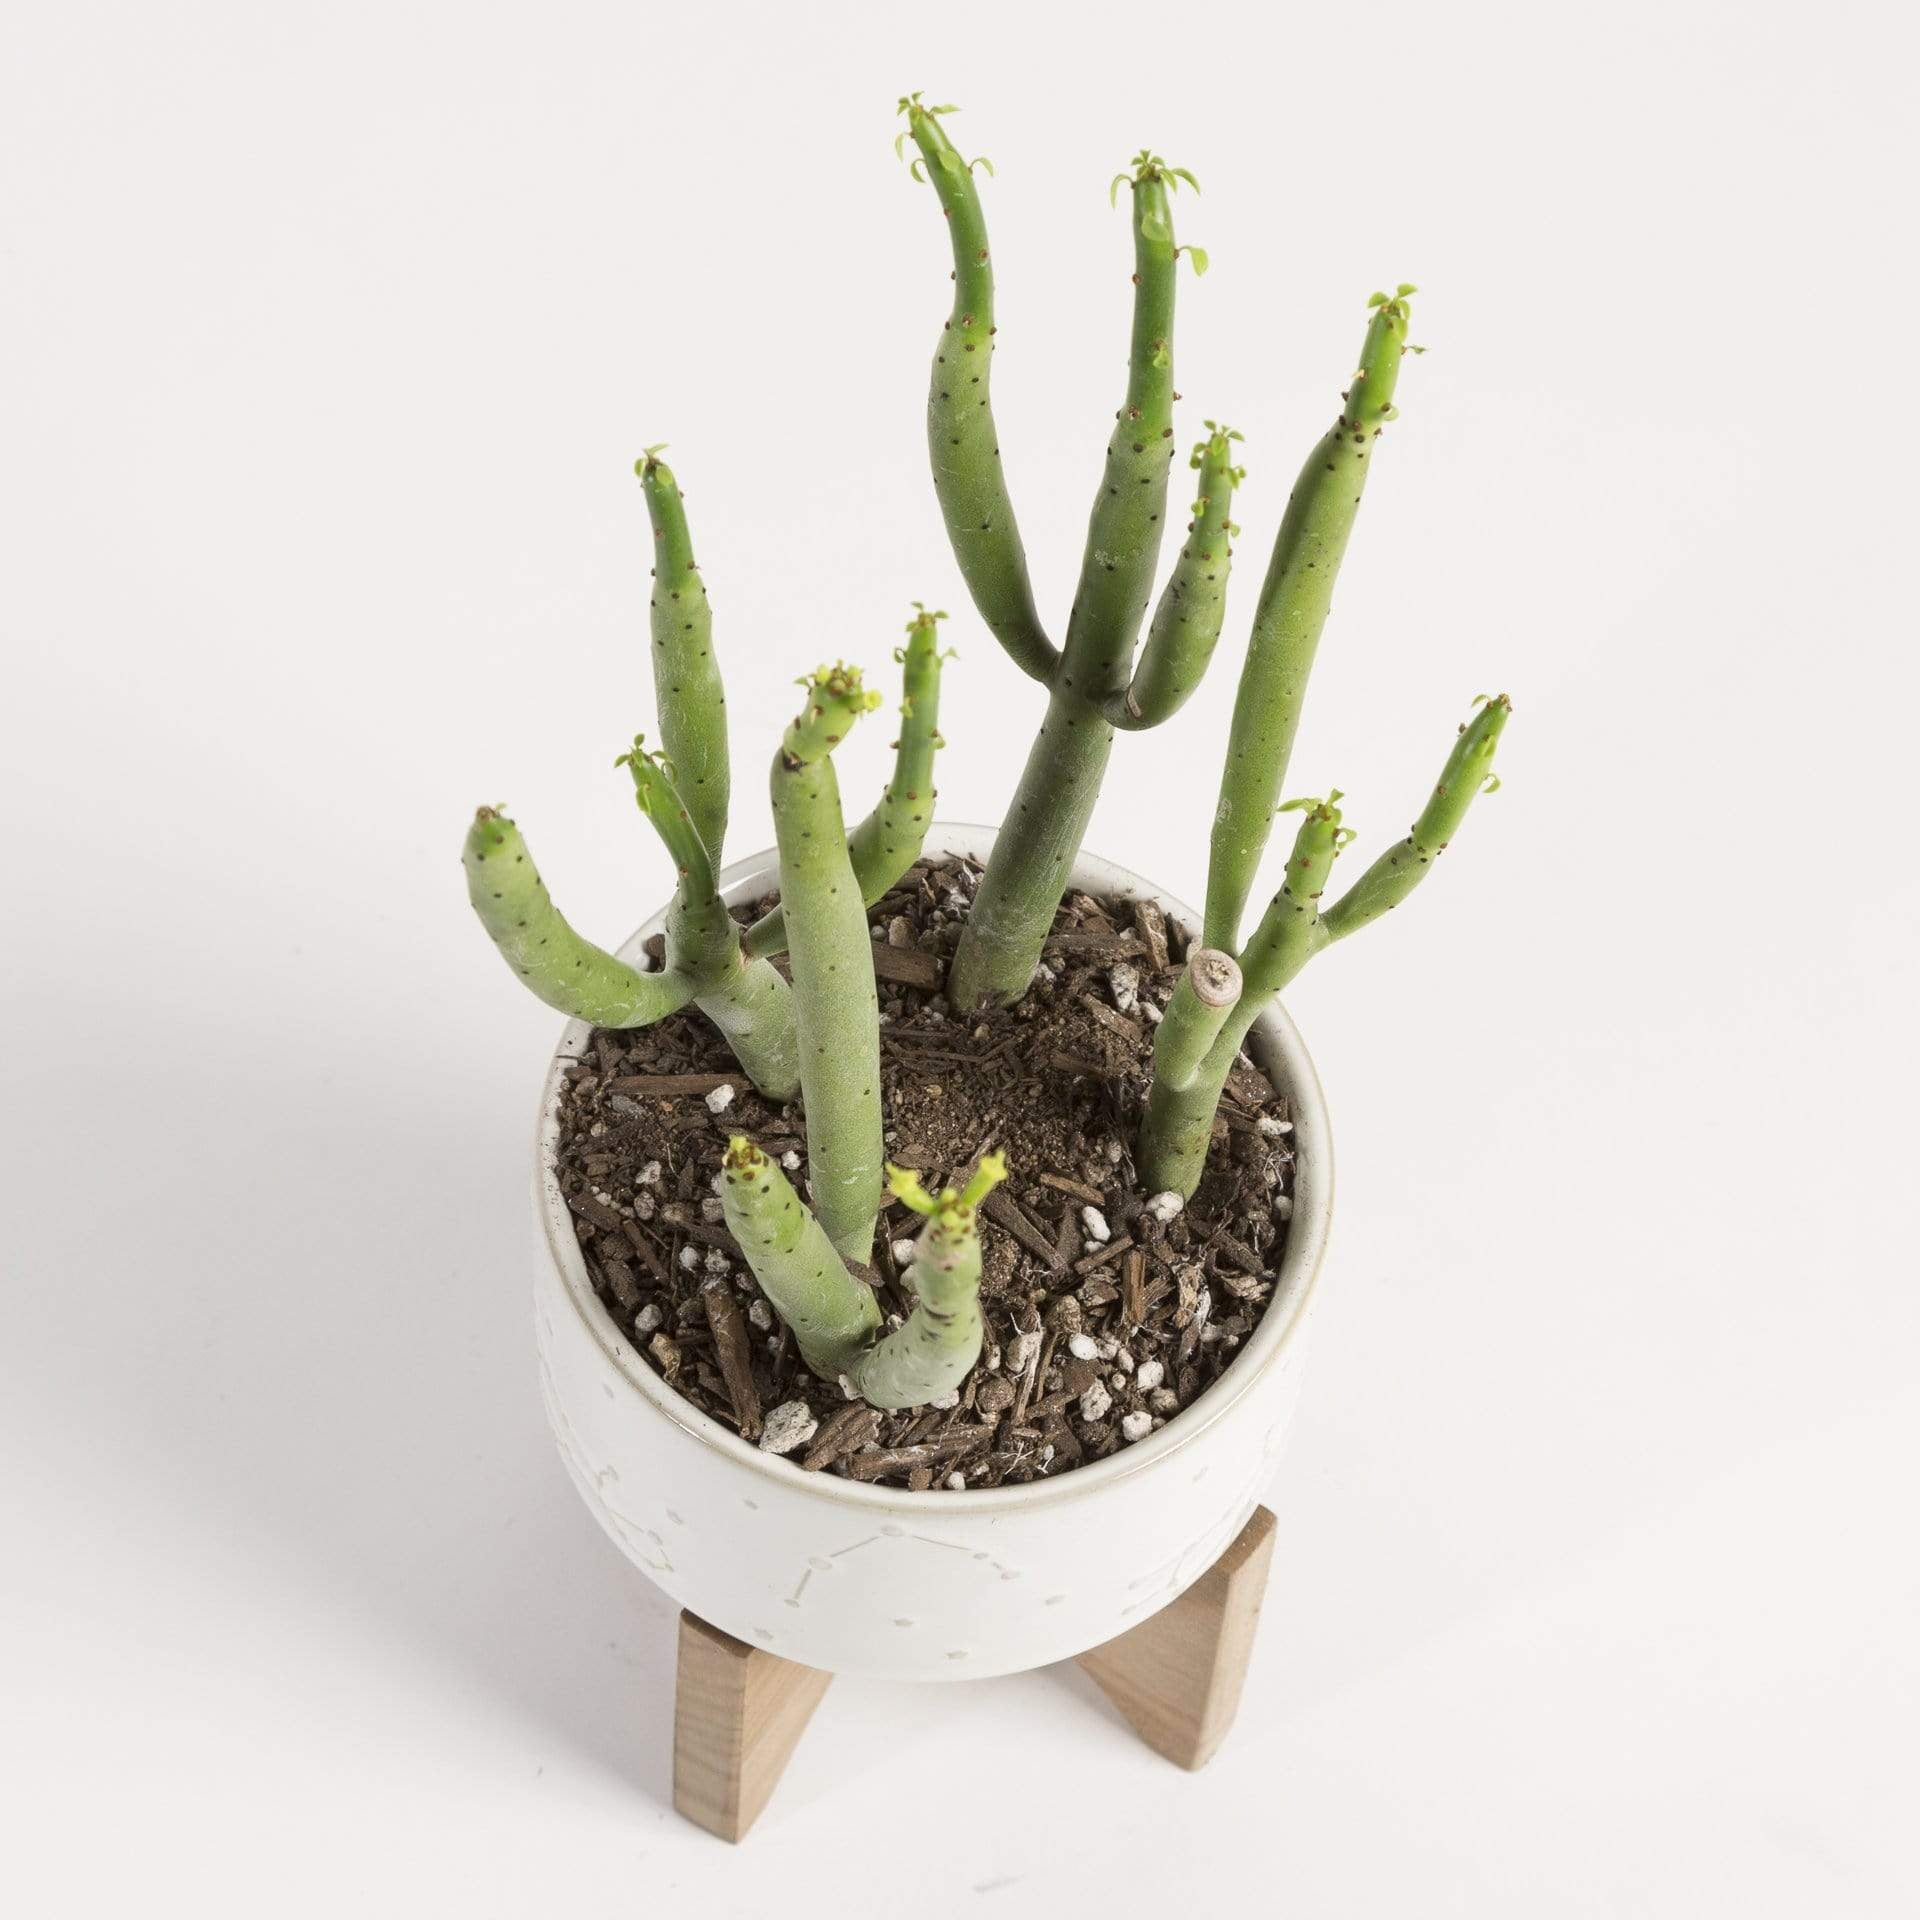 Cactus 'Cat Tails' - Urban Sprouts